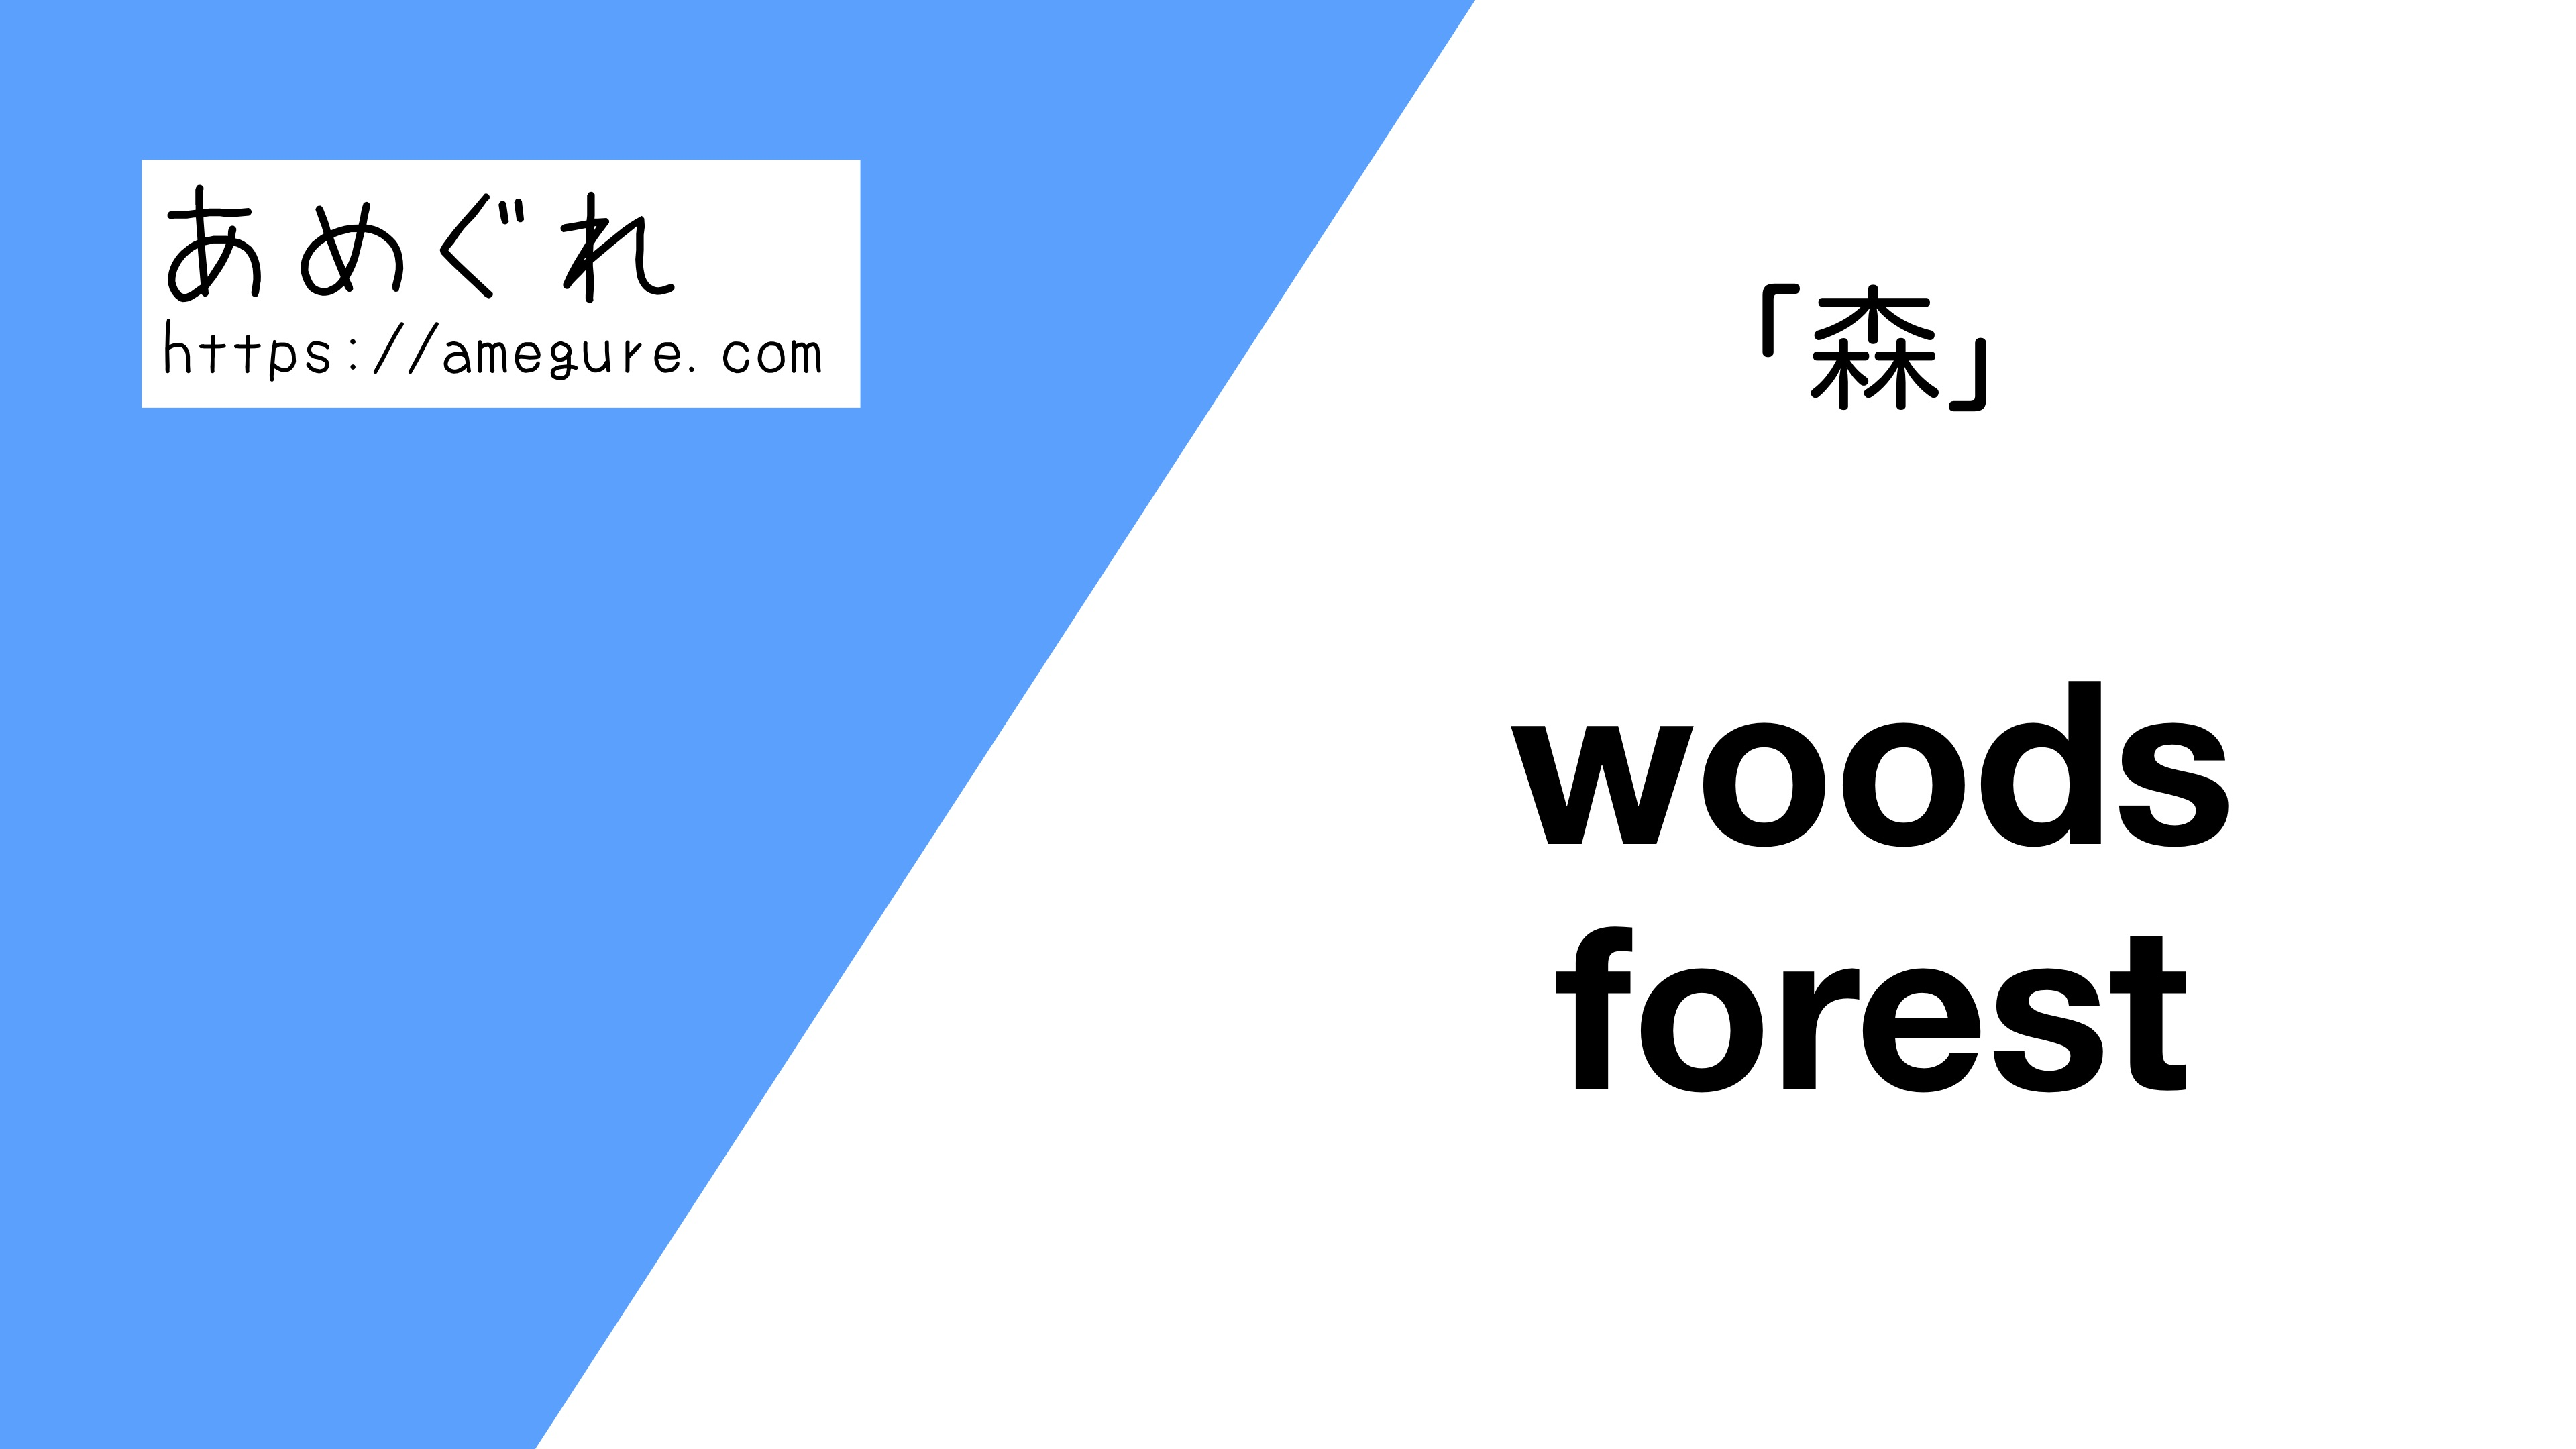 woods-forest違い